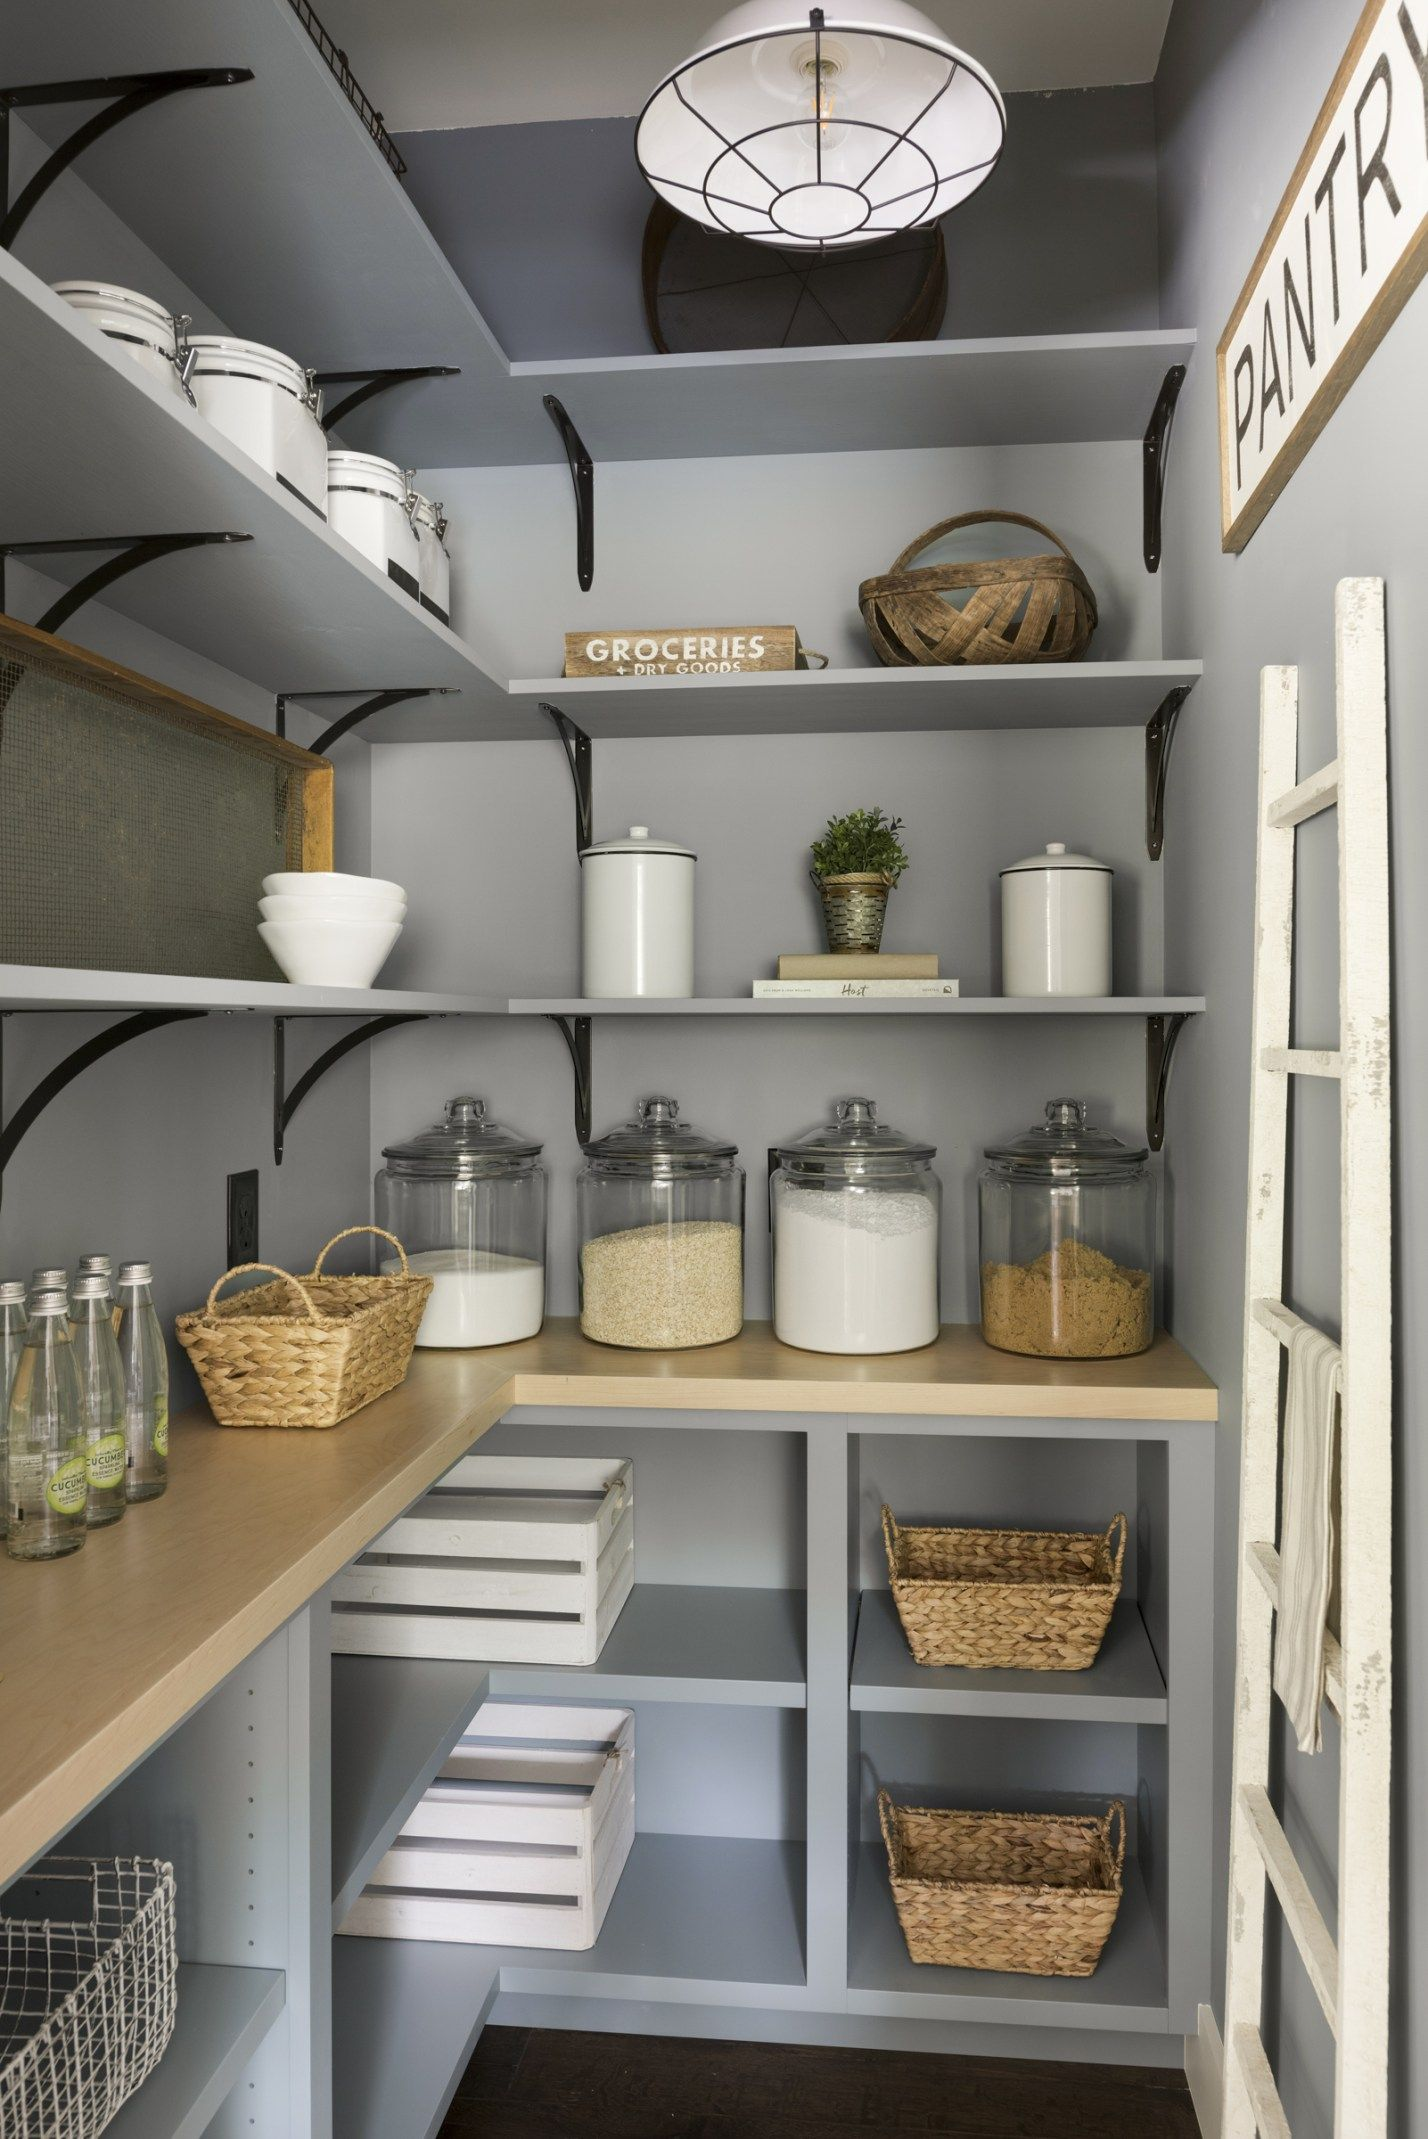 Whitehaven Pantry Redo And Inspiration: Blue Pantry Renovation With Plenty Of Storage, Wood